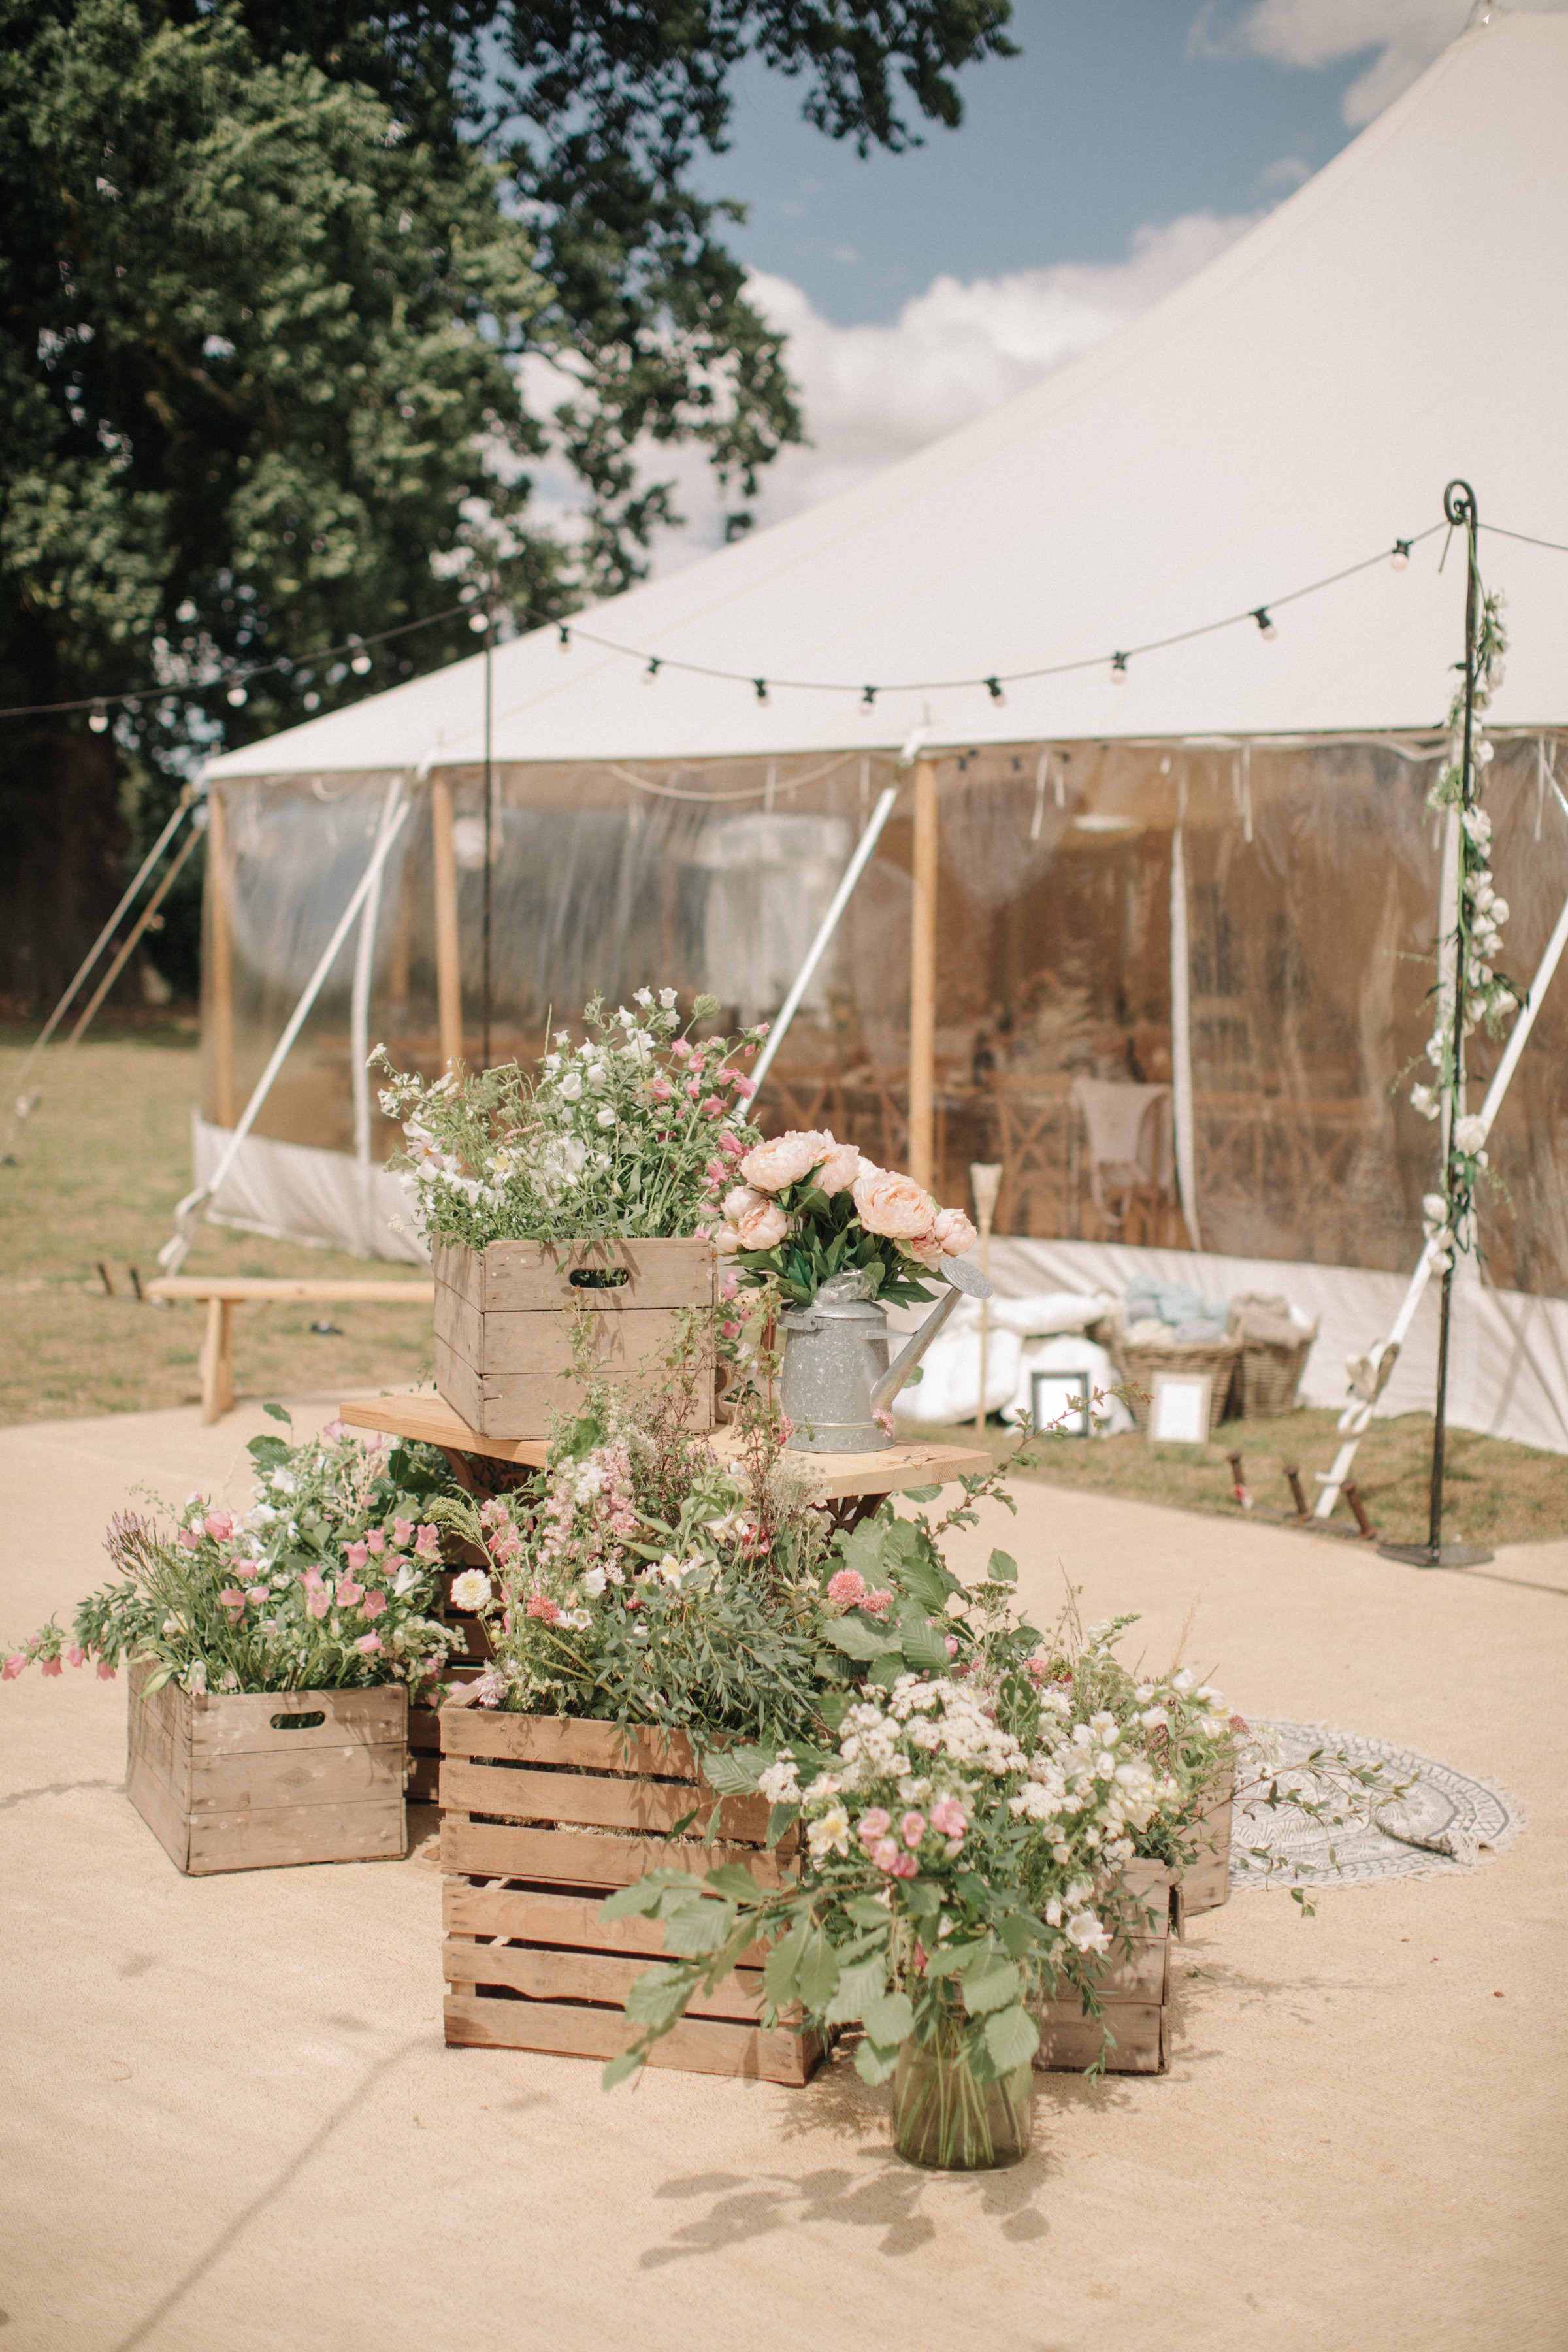 Steph & Ed's PapaKåta Sperry Tent wedding at home in Nottingham captured by M & J Photography: Florals by Elder & Wild